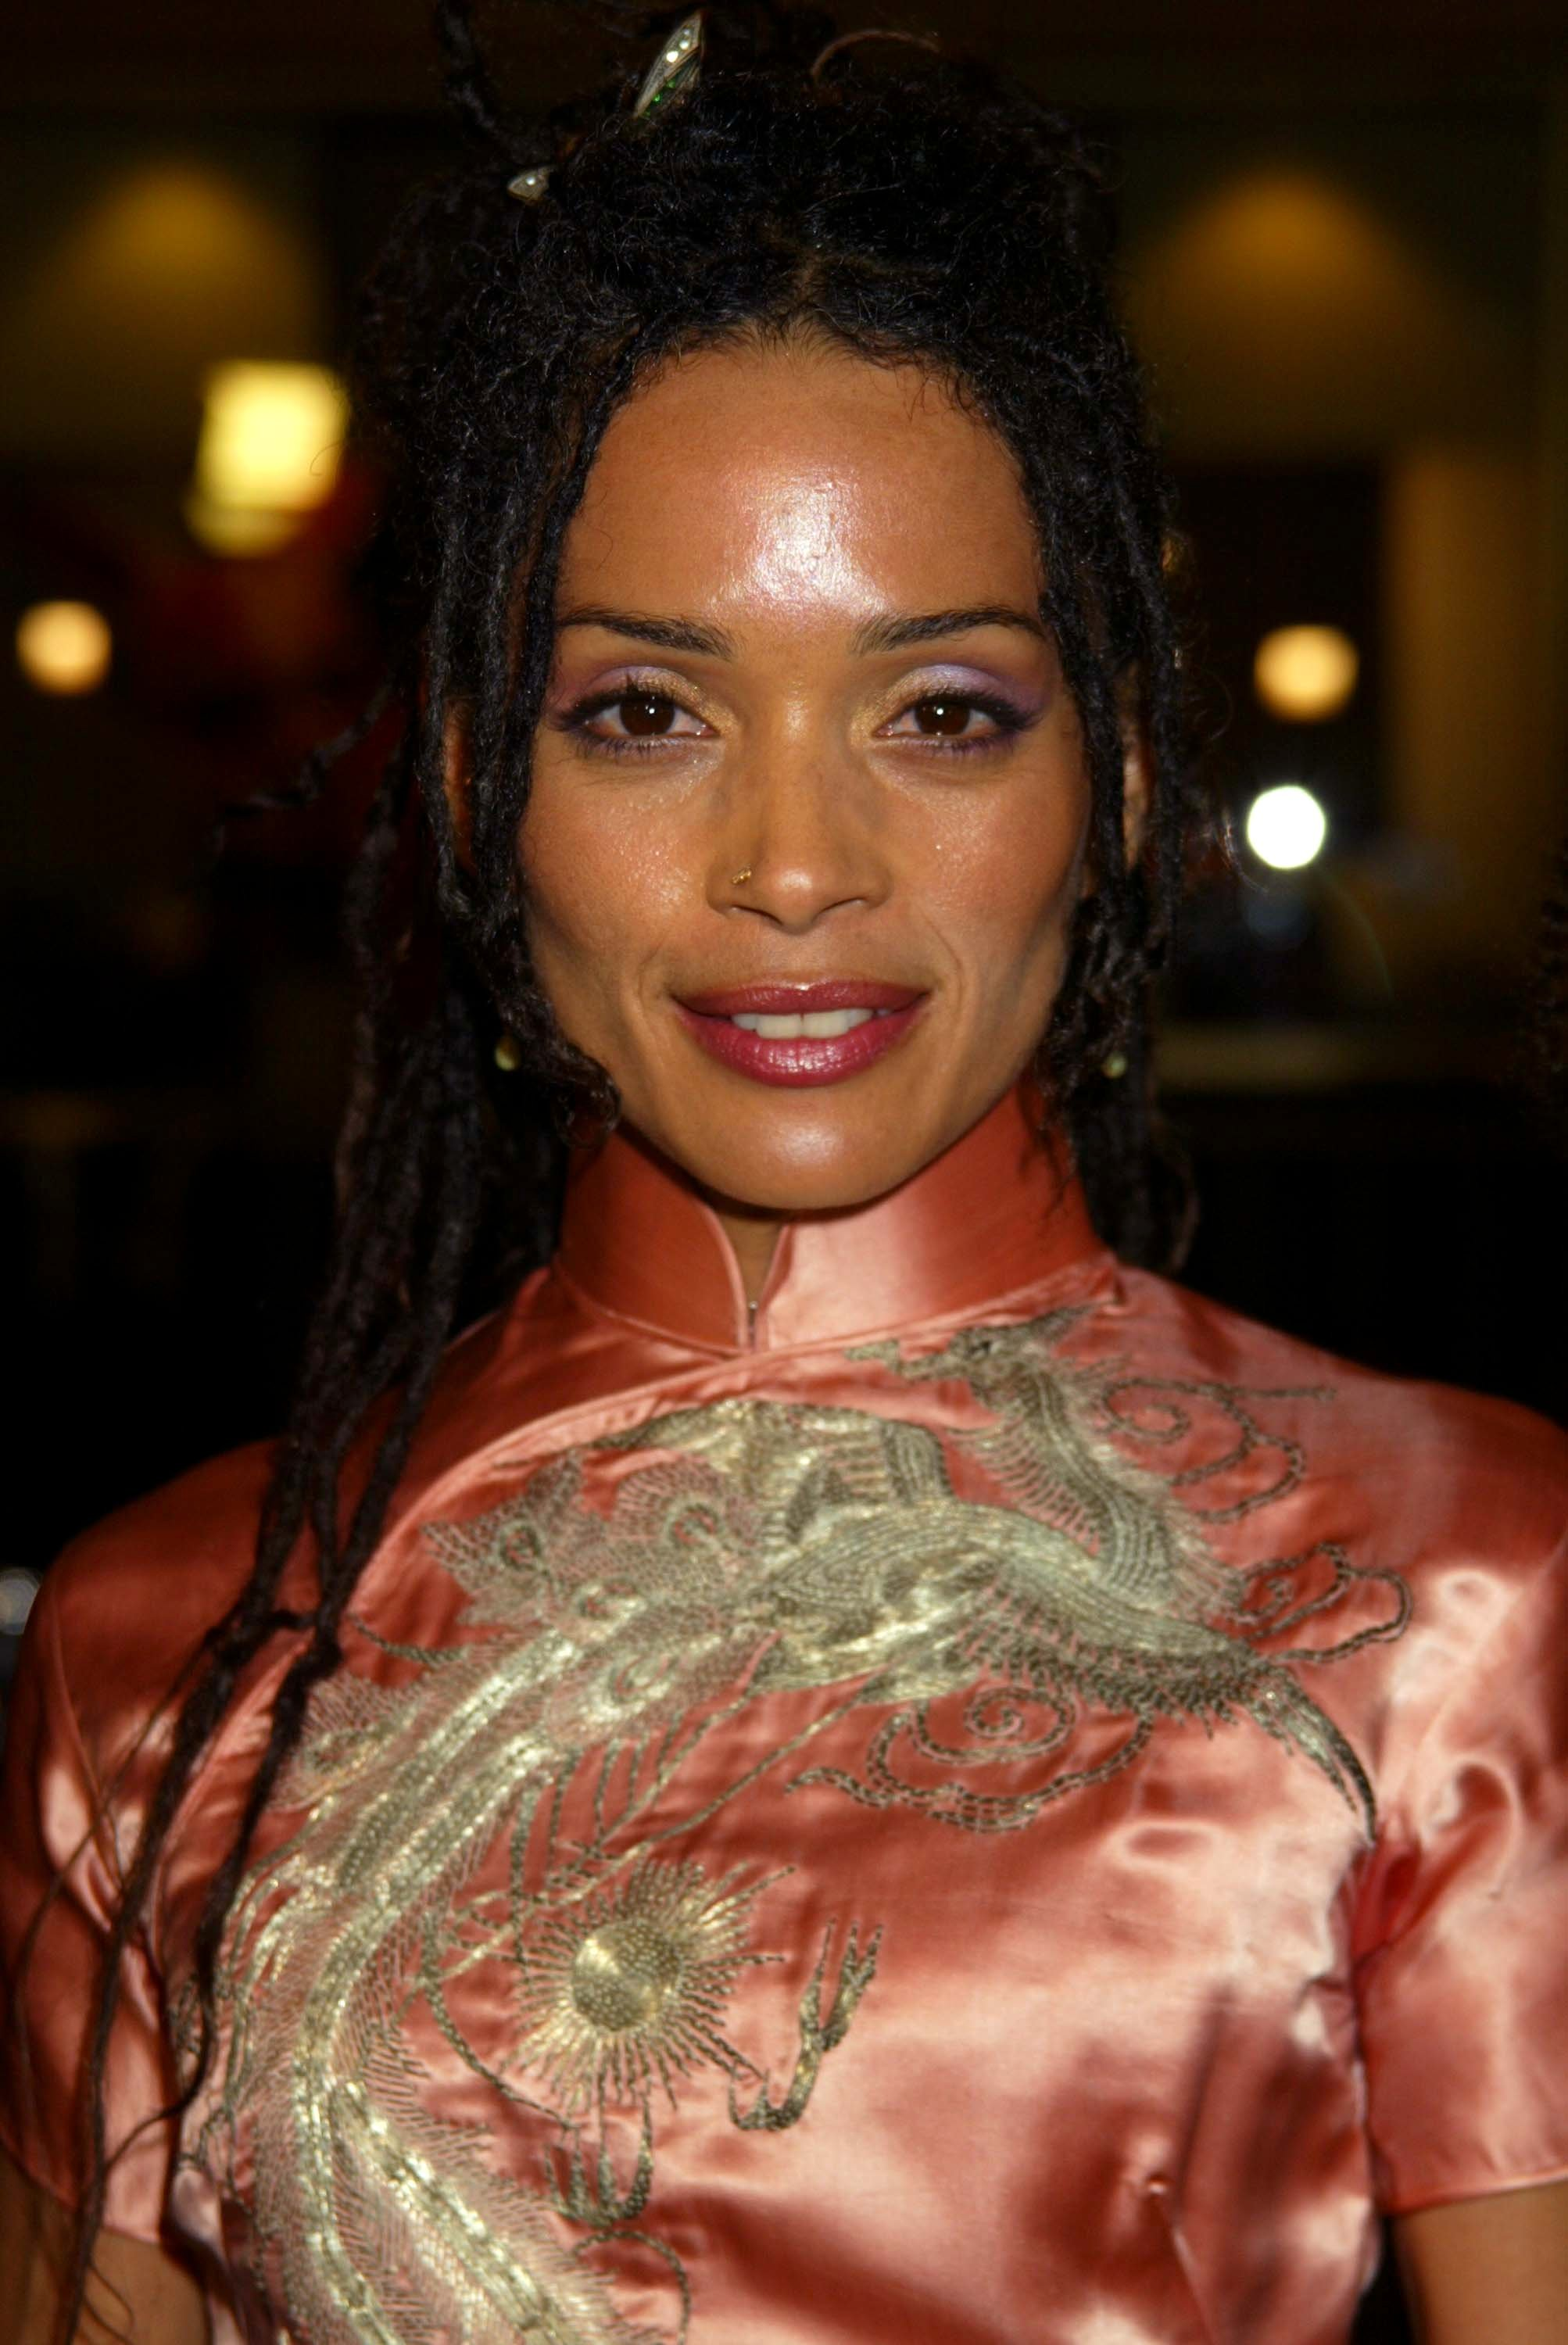 Ray Donovan Star Lisa Bonet Loves Coconut Oil for Healthy Cooking and Glowing Skin